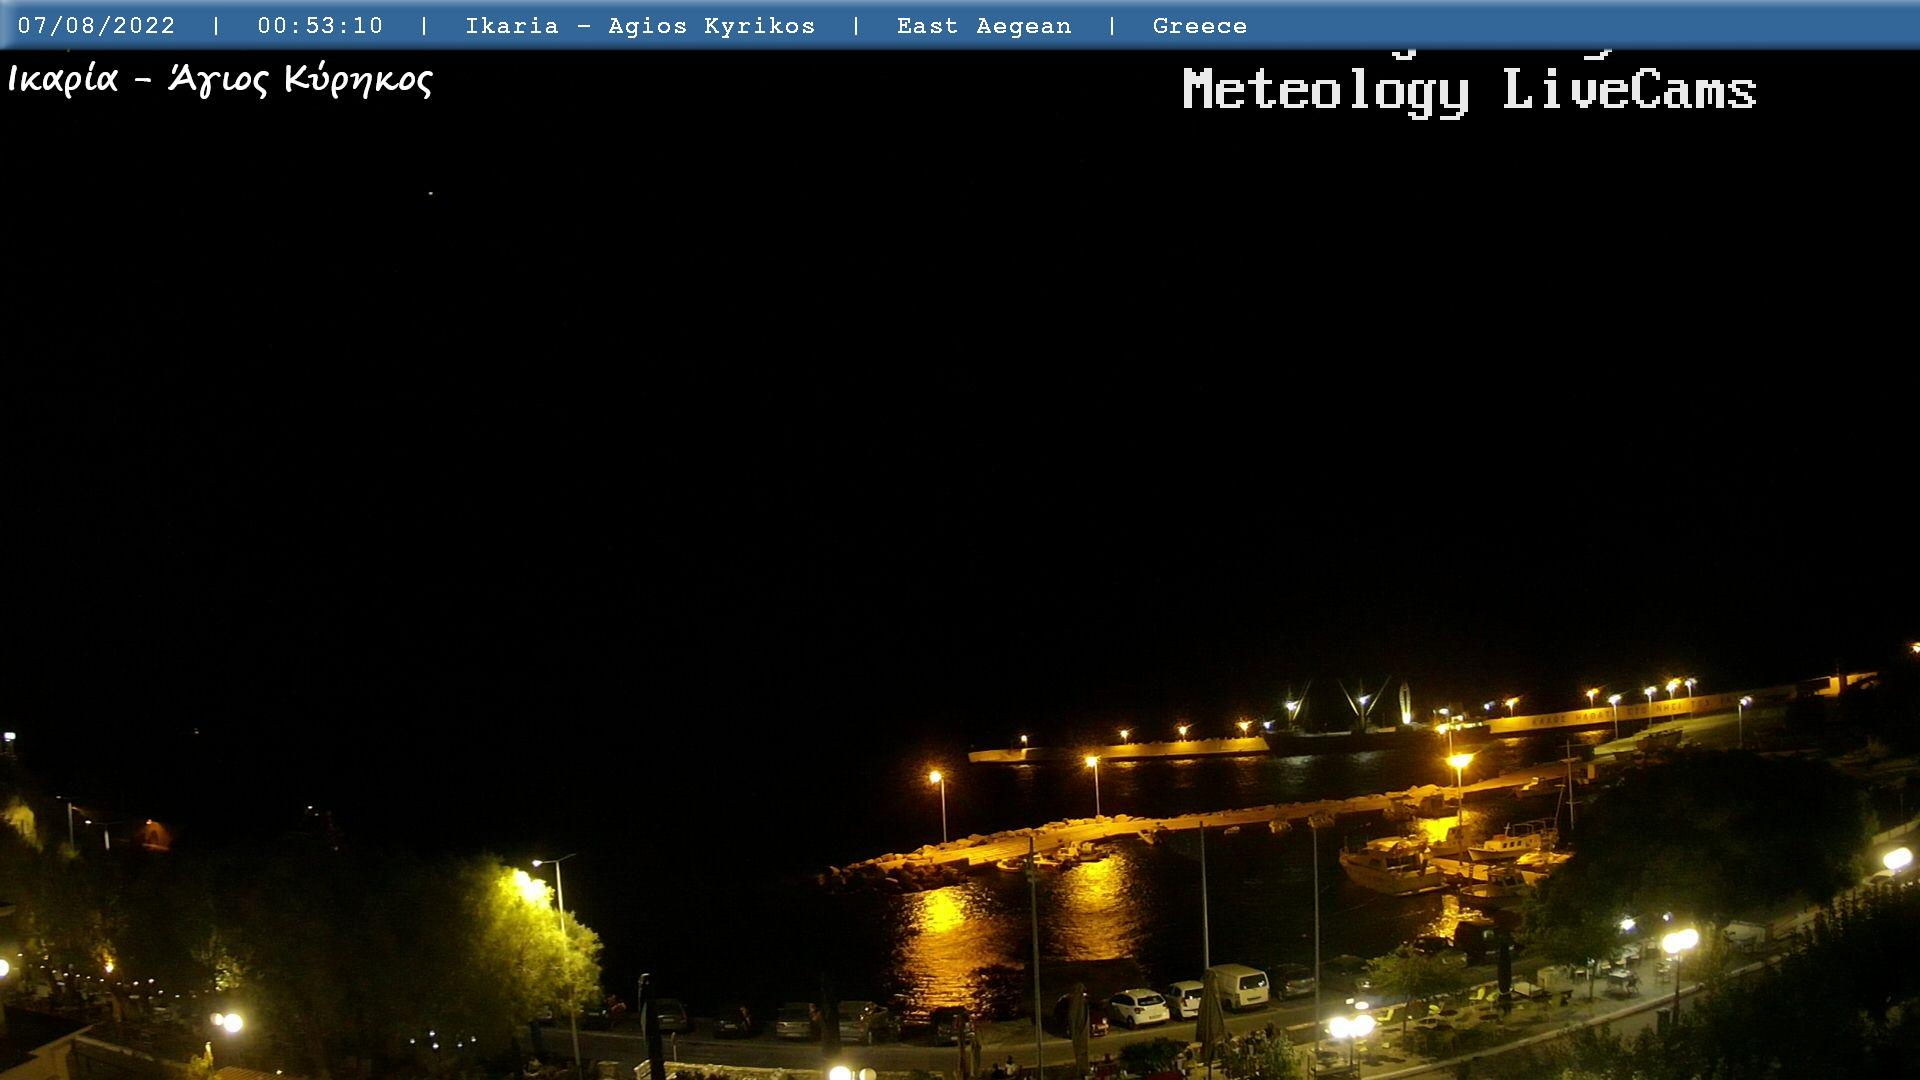 Webcam Ikaria - Agios Kirikos